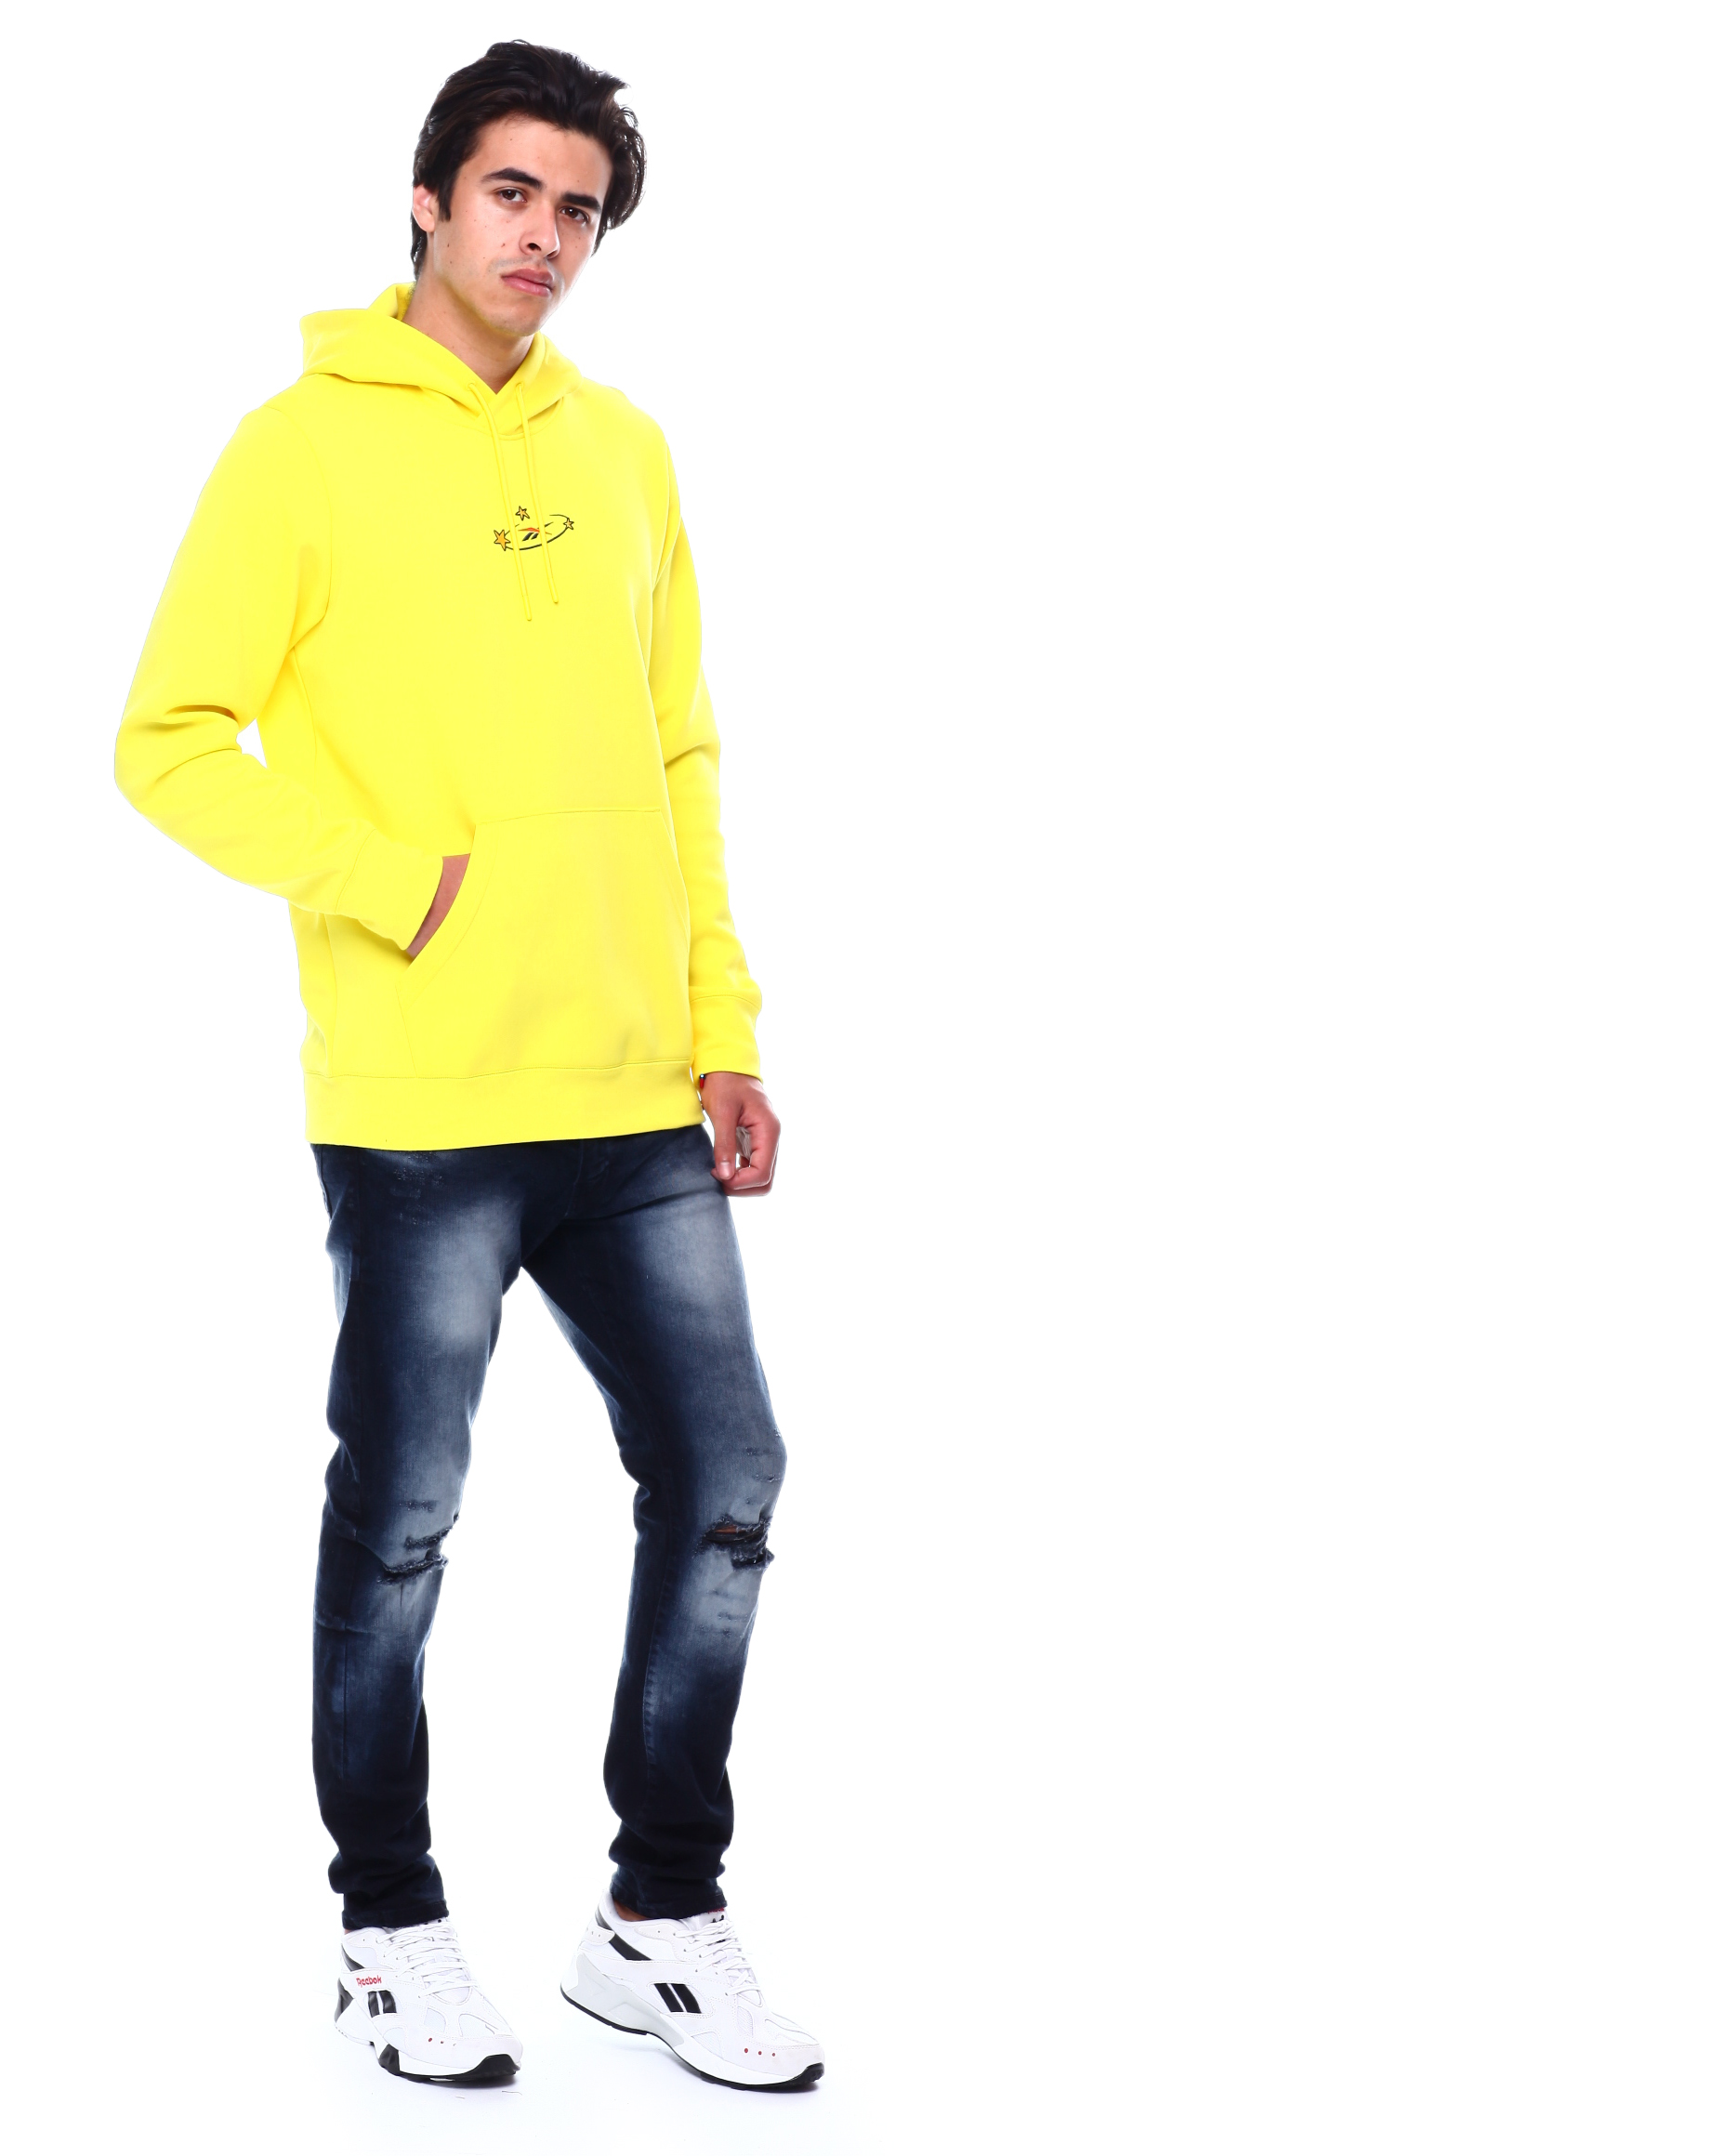 Buy Tom and Jerry Sweat Hoodie 3 Men's Hoodies from Reebok. Find Reebok fashion & more at DrJays.com